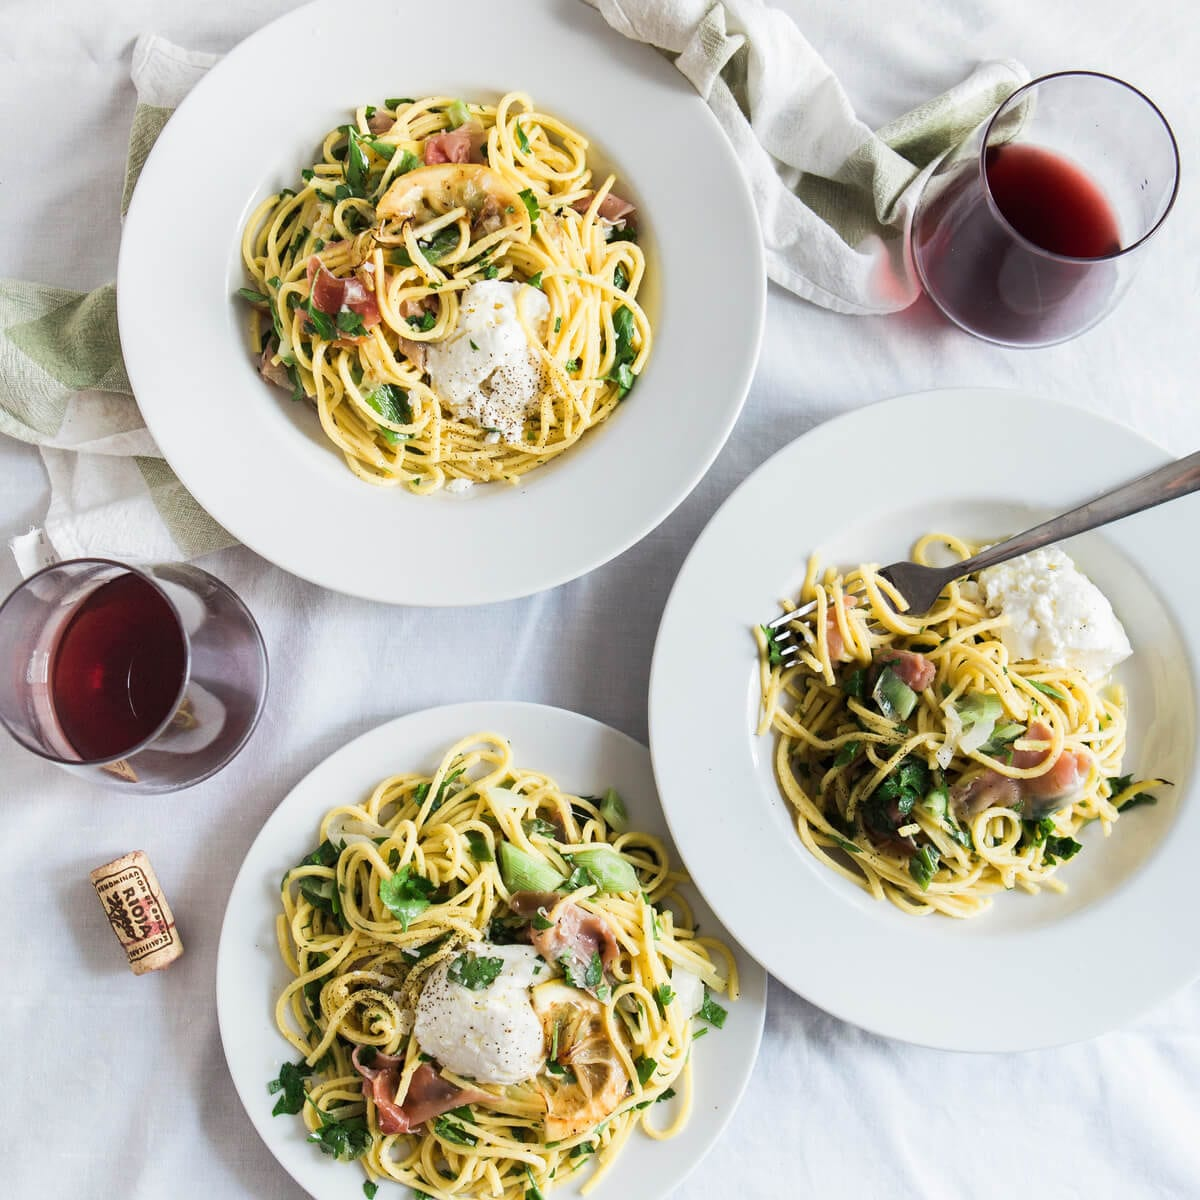 three bowls of pasta,two wine glasses with red wine, cork